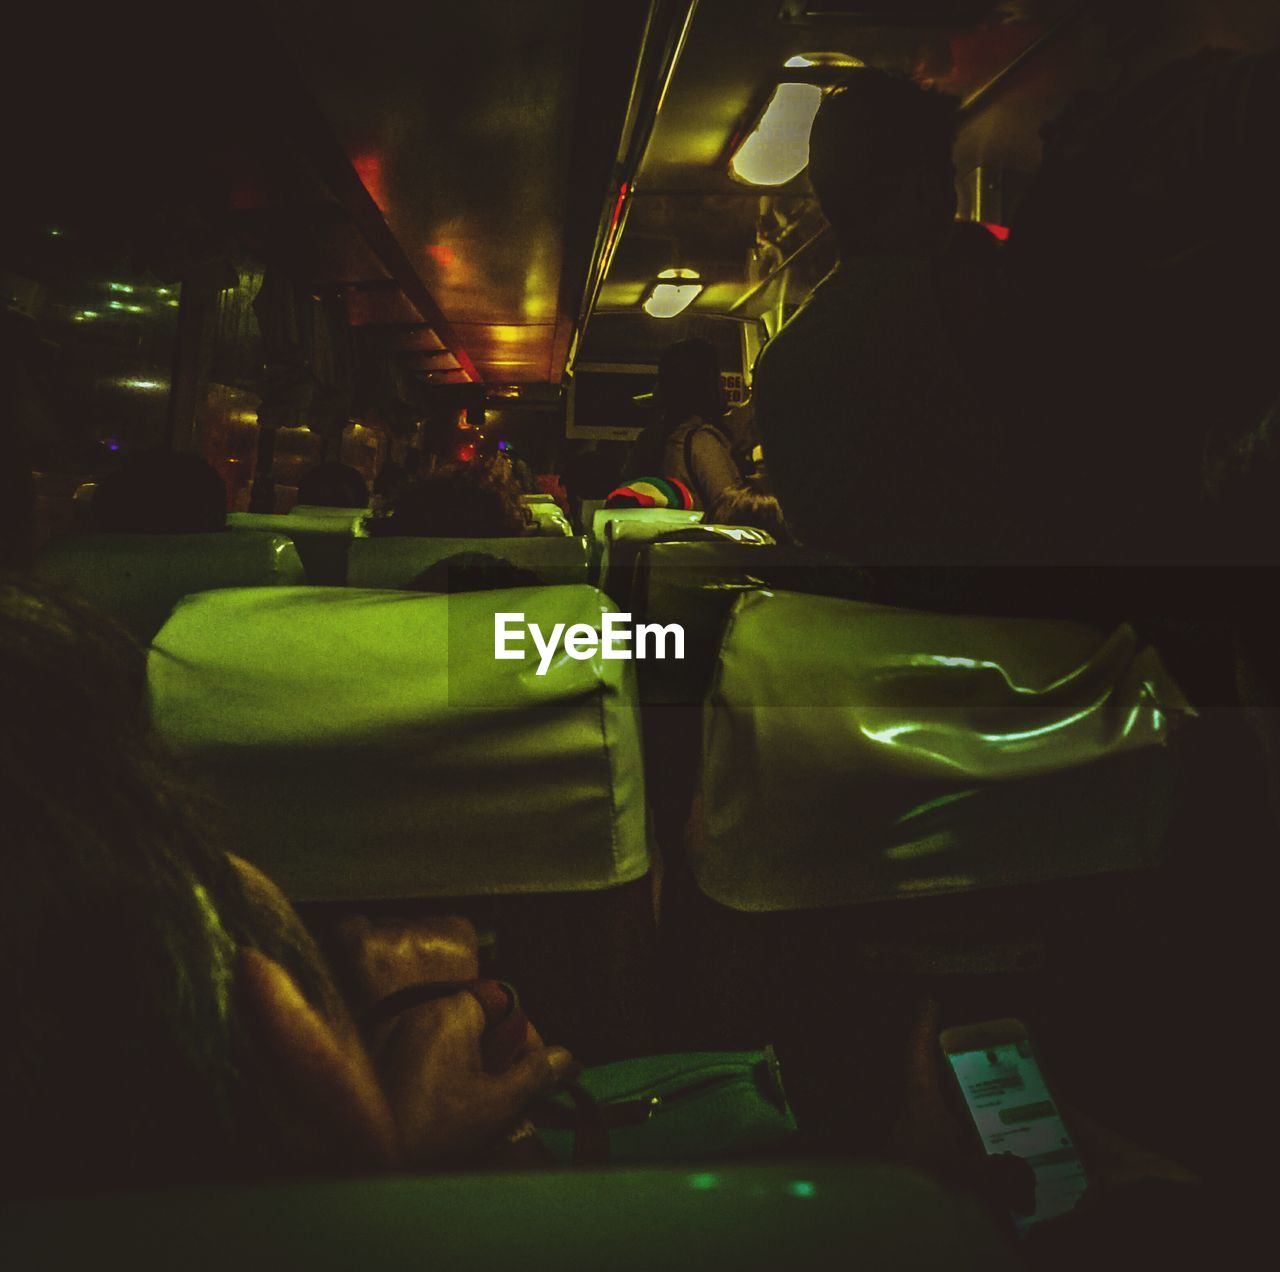 vehicle interior, illuminated, real people, transportation, indoors, mode of transport, night, men, vehicle seat, one person, people